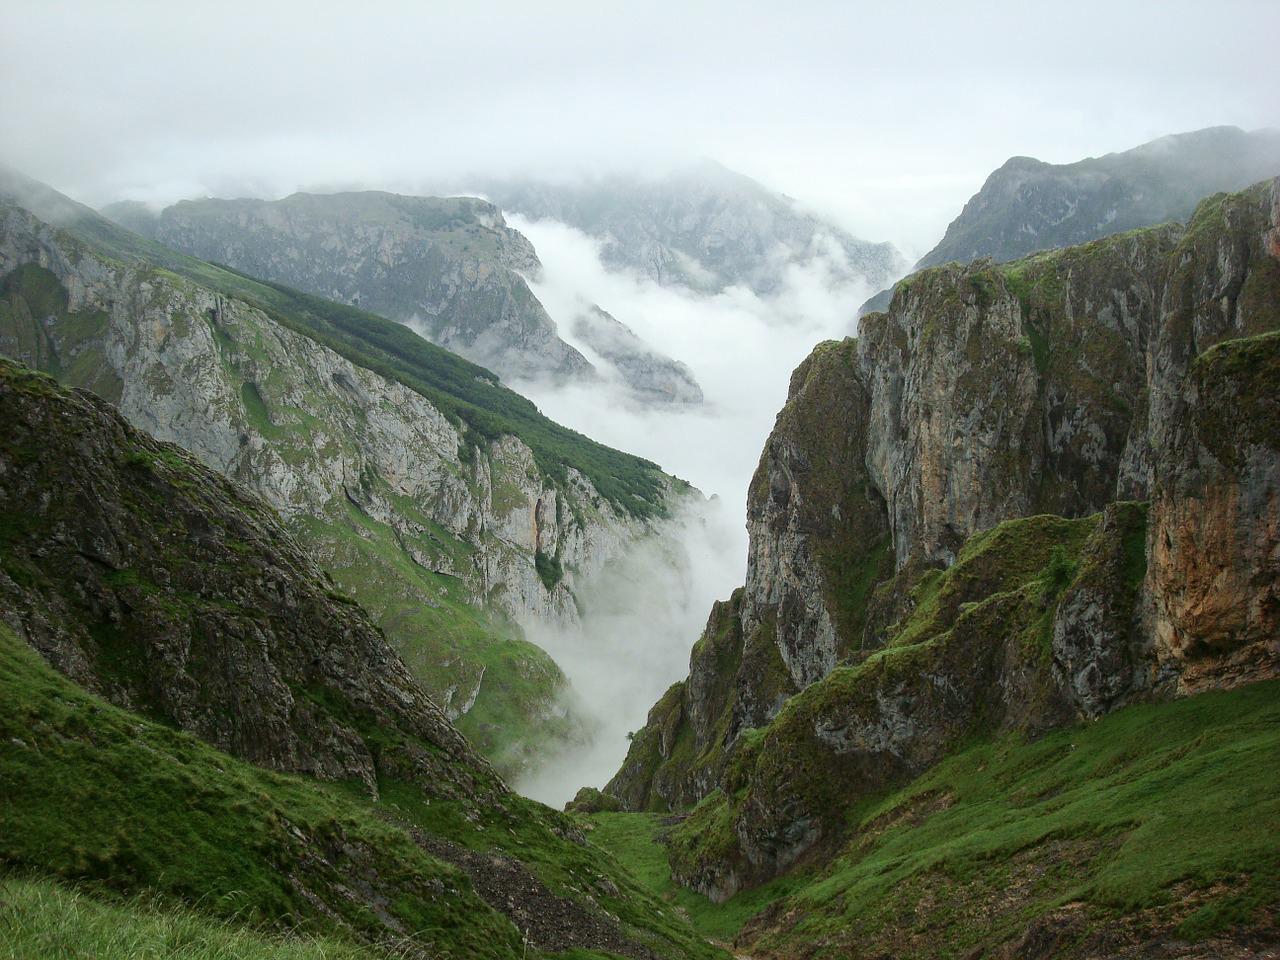 <strong>Getaways in Asturias</strong>